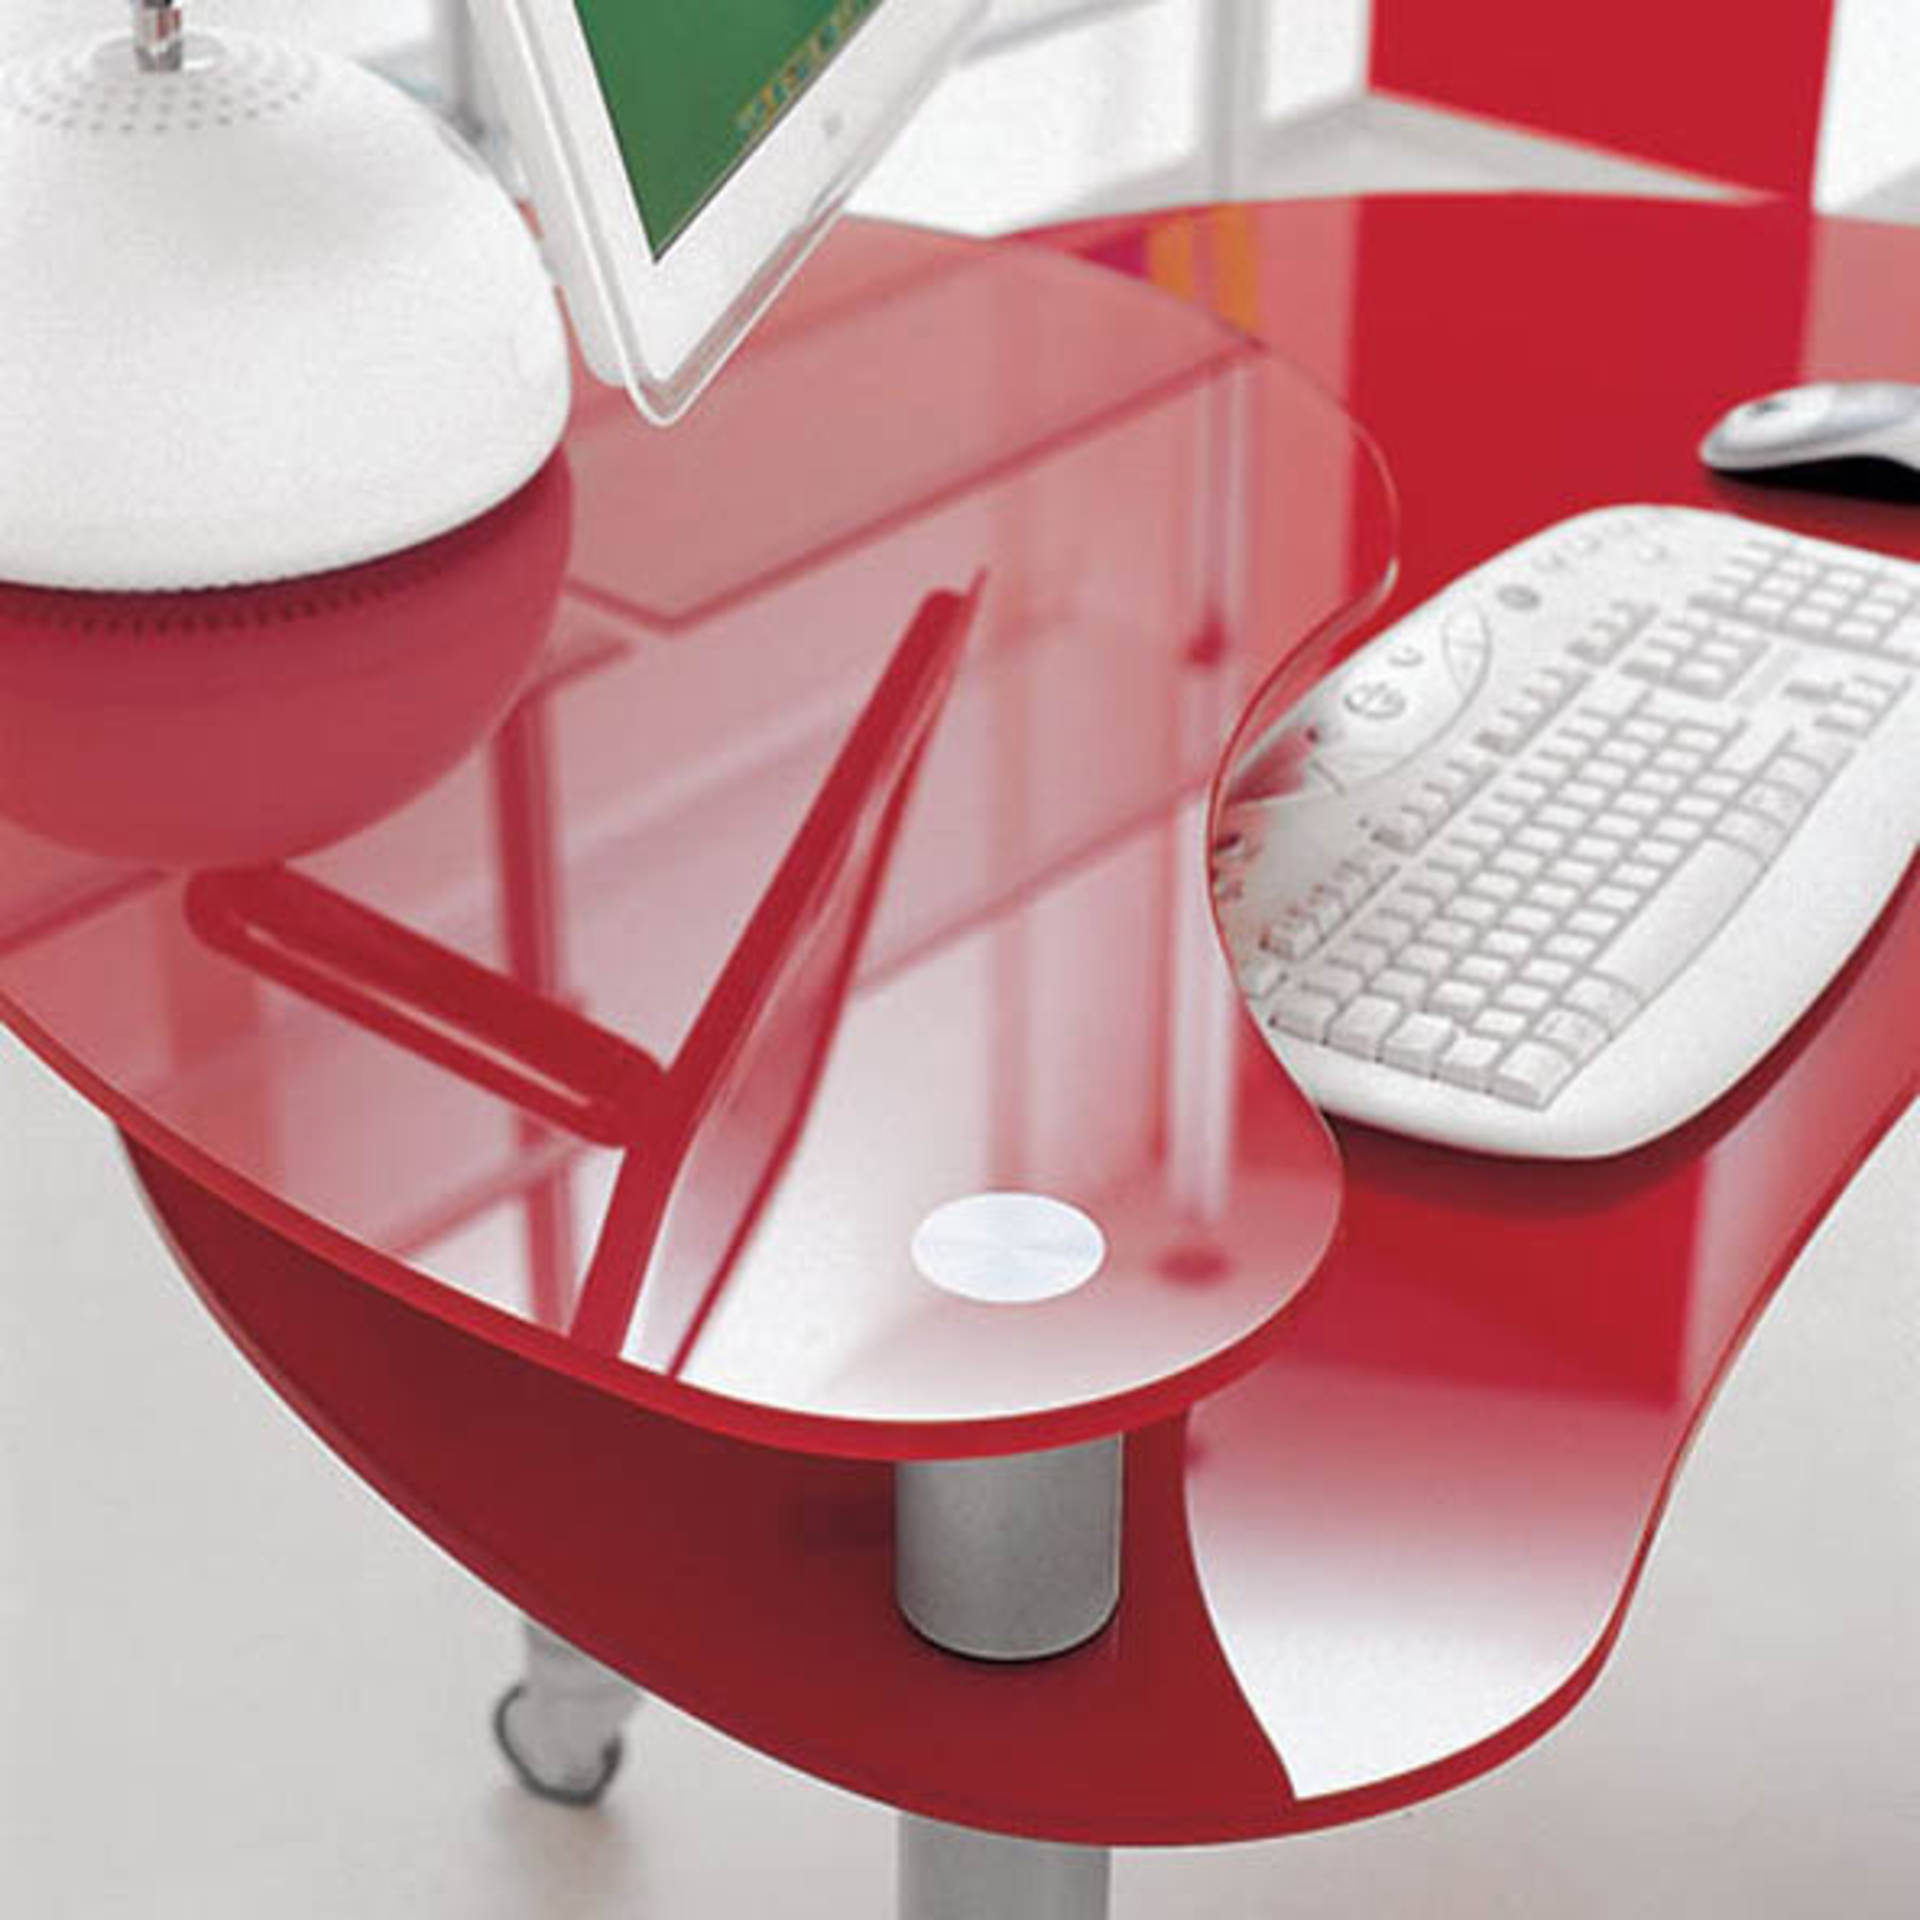 Contemporary Home Office Computer Furniture by Cattelan Contemporary Home  Office Computer Furniture by CattelanContemporary Home Office Computer Furniture by Cattelan   Home Reviews. Contemporary Home Office Computer Desk. Home Design Ideas